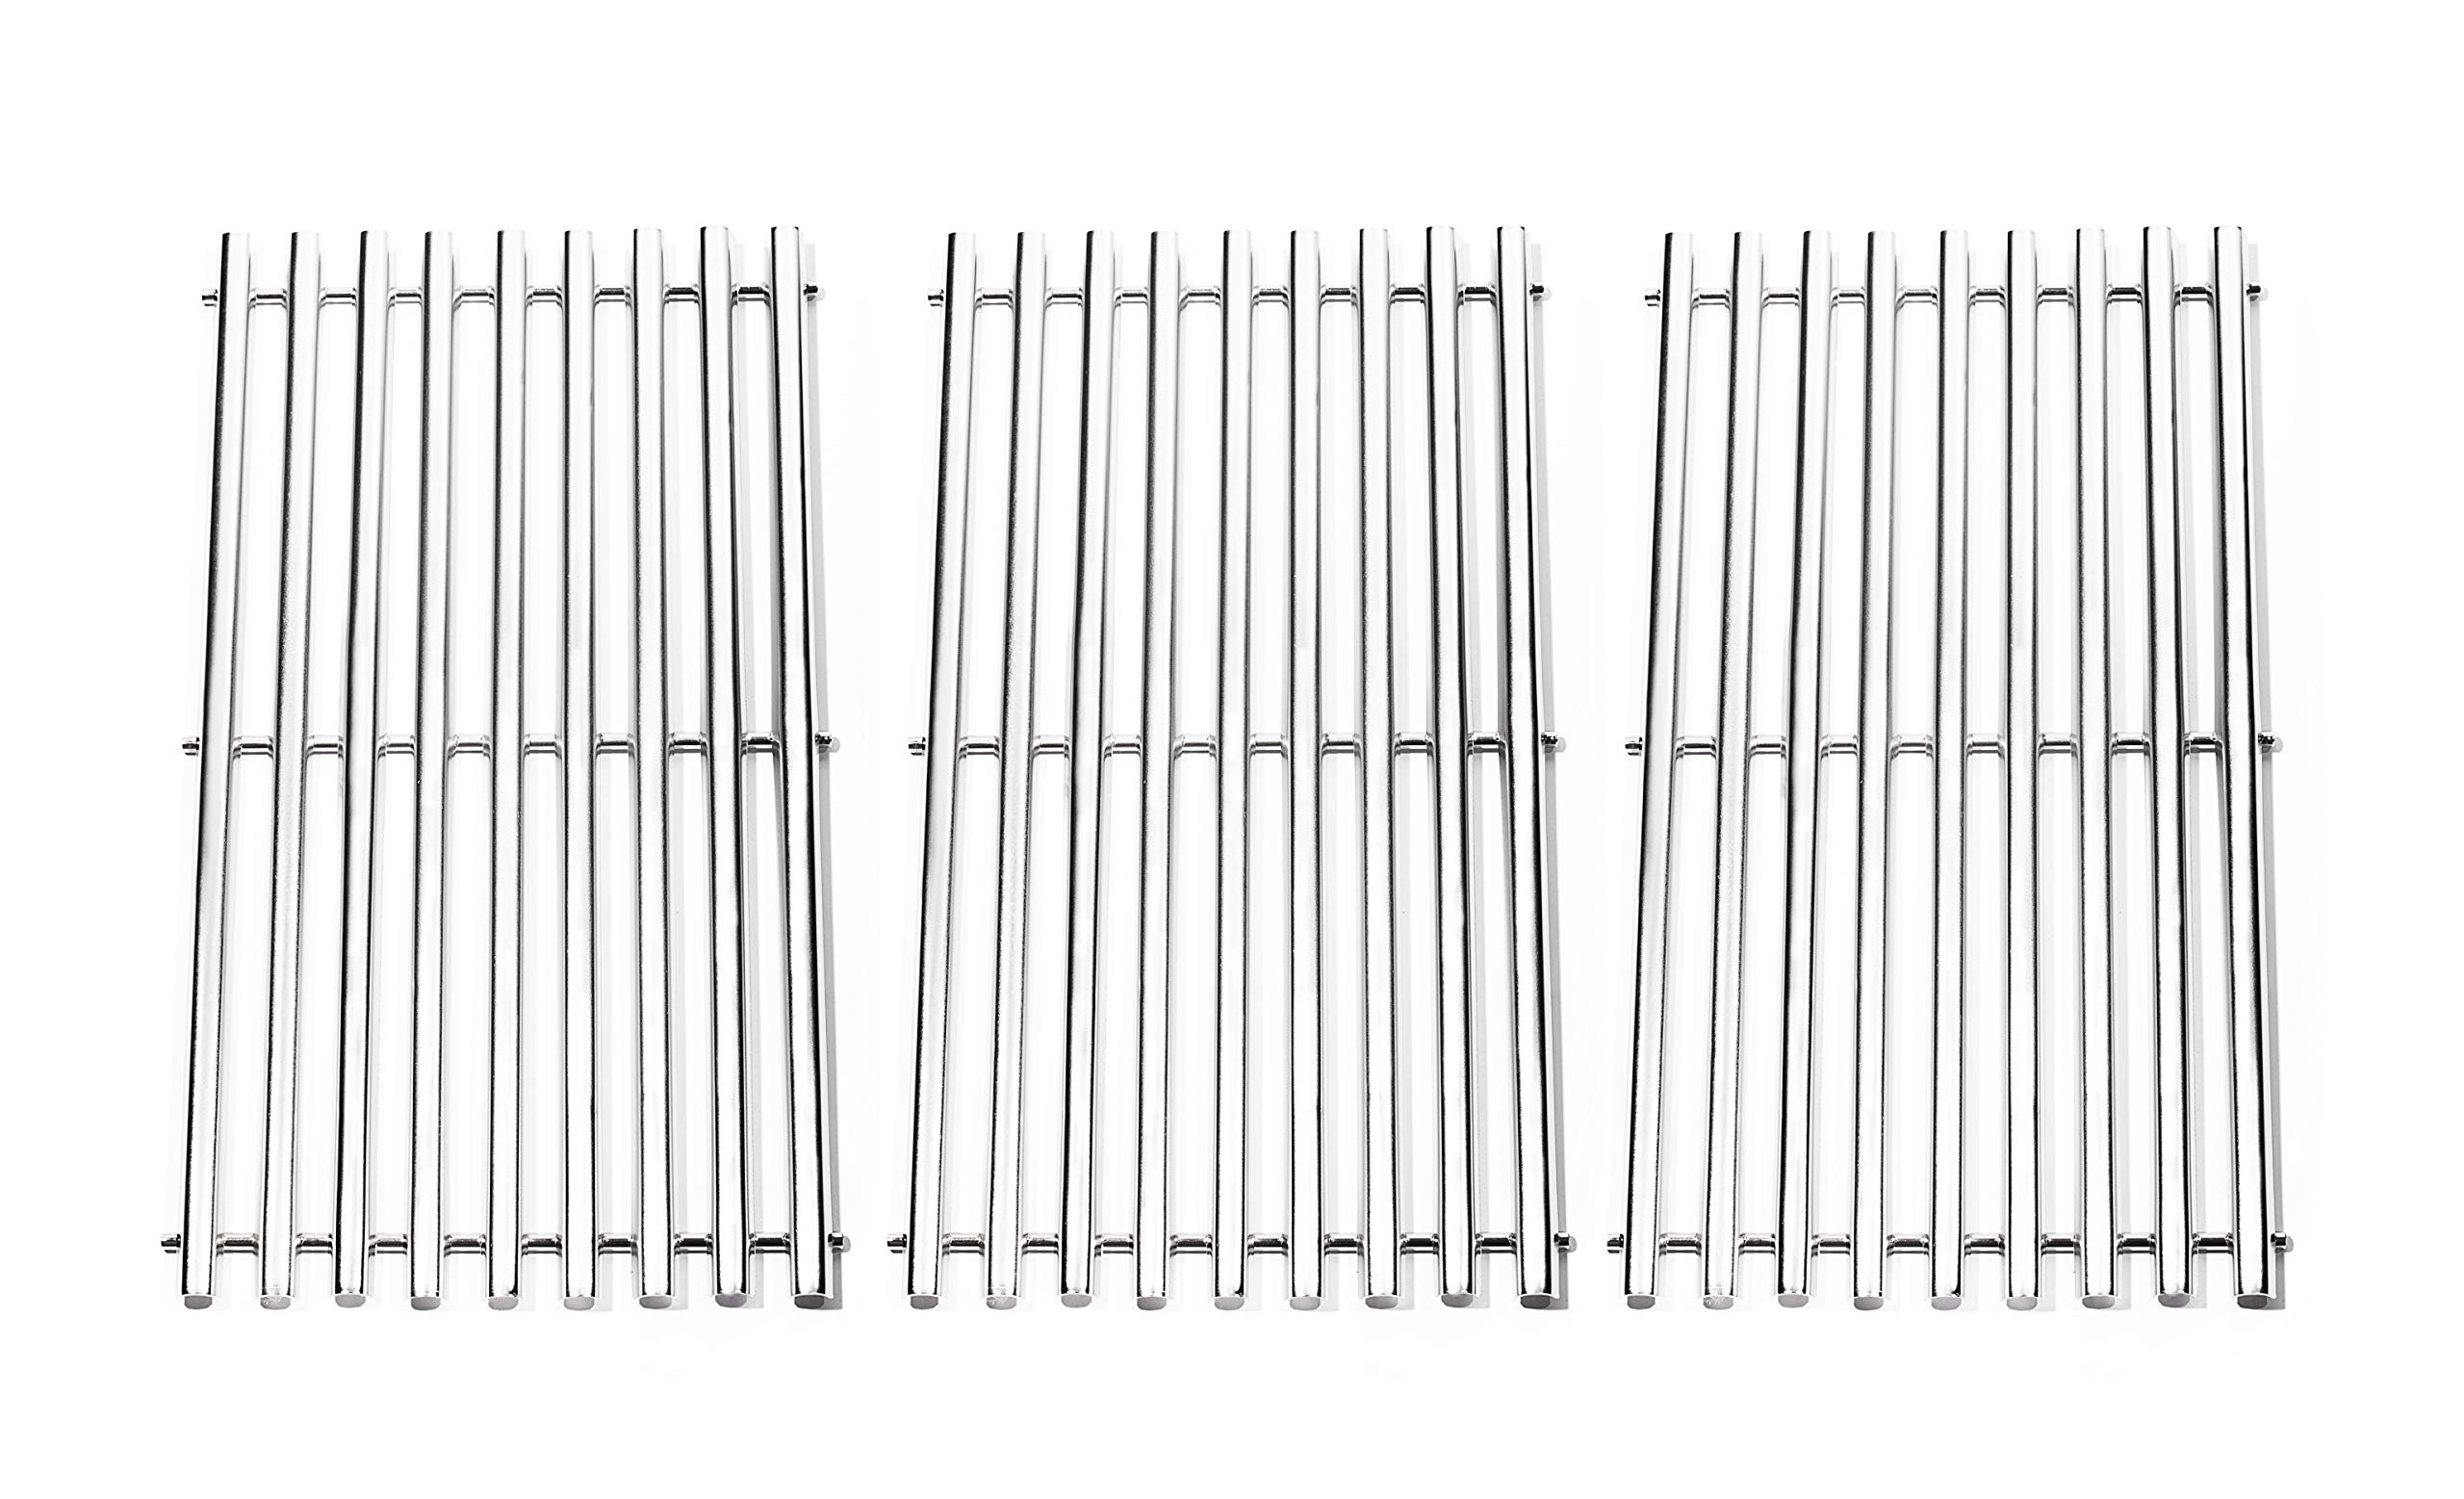 BBQration Stainless Steel Channel Cooking Grid Replacement for Gas Grill Model Charbroil 463440109, Sold as a set of 3 by BBQration